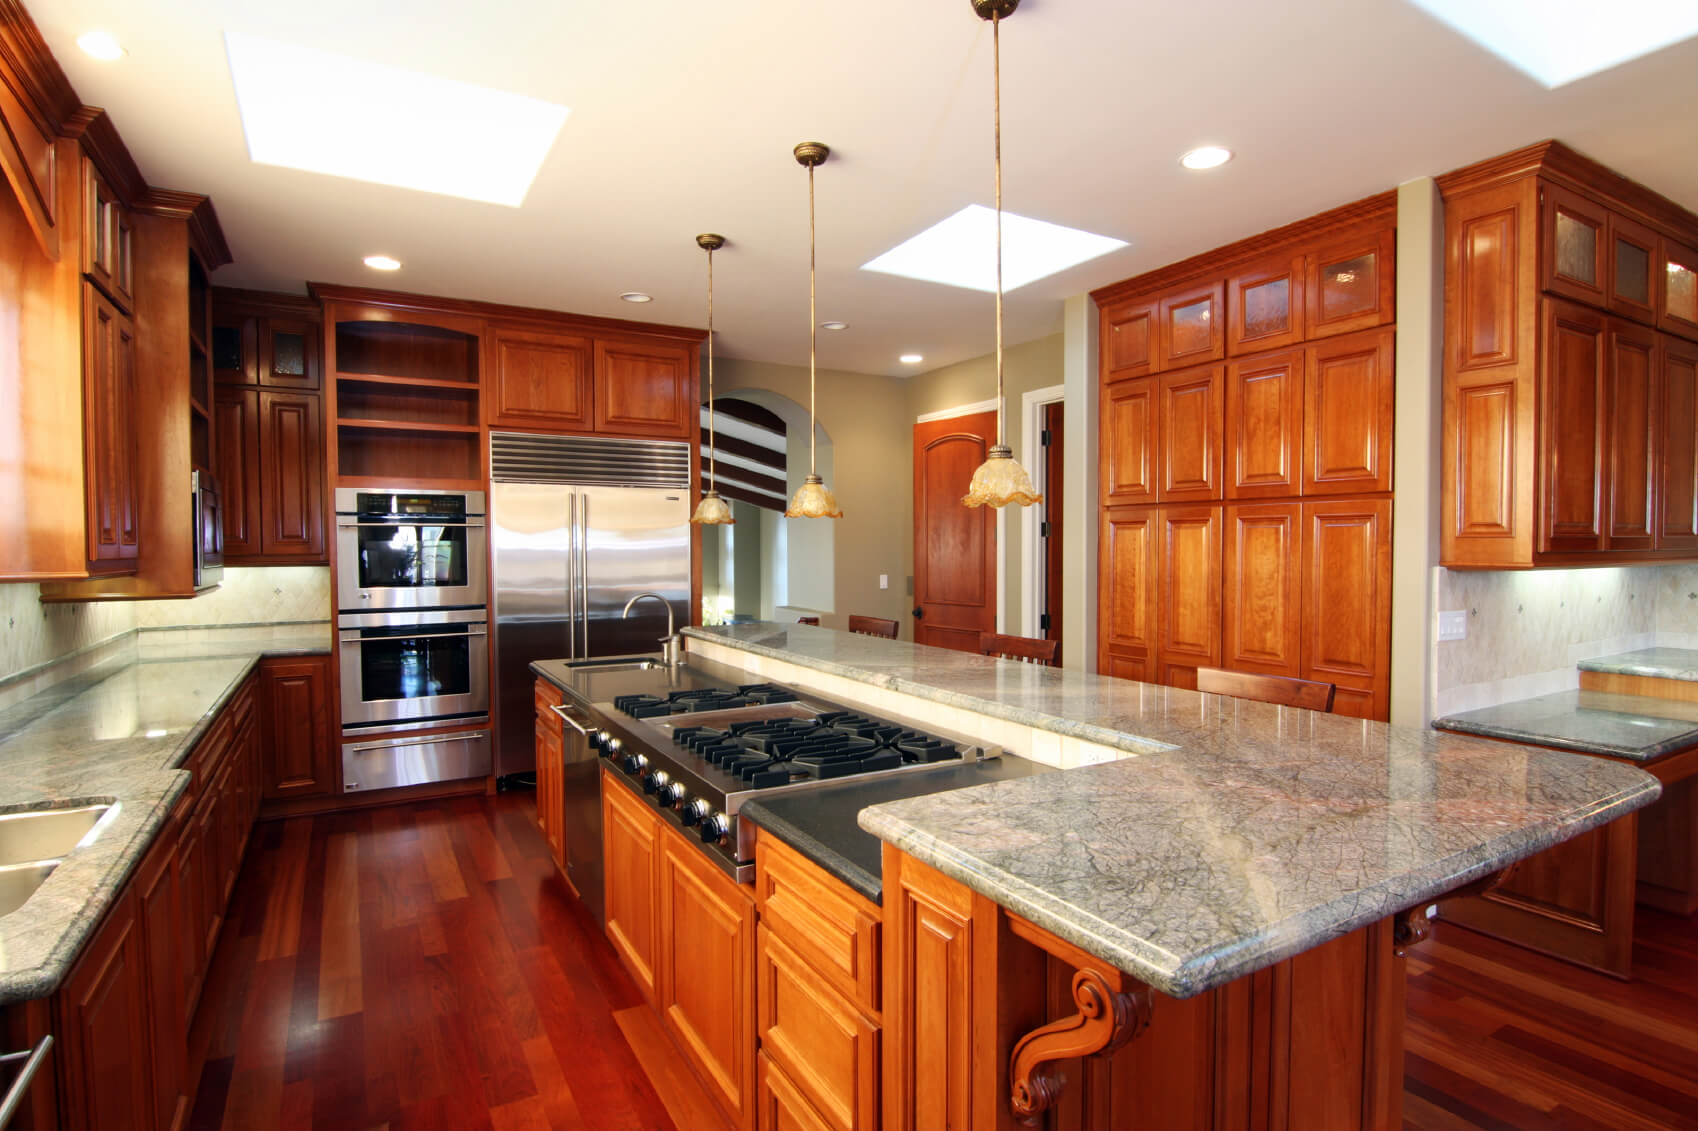 Kitchen Centered Around Lengthy Island Featuring Full Range, Sink, And  Dishwasher, Plus Raised